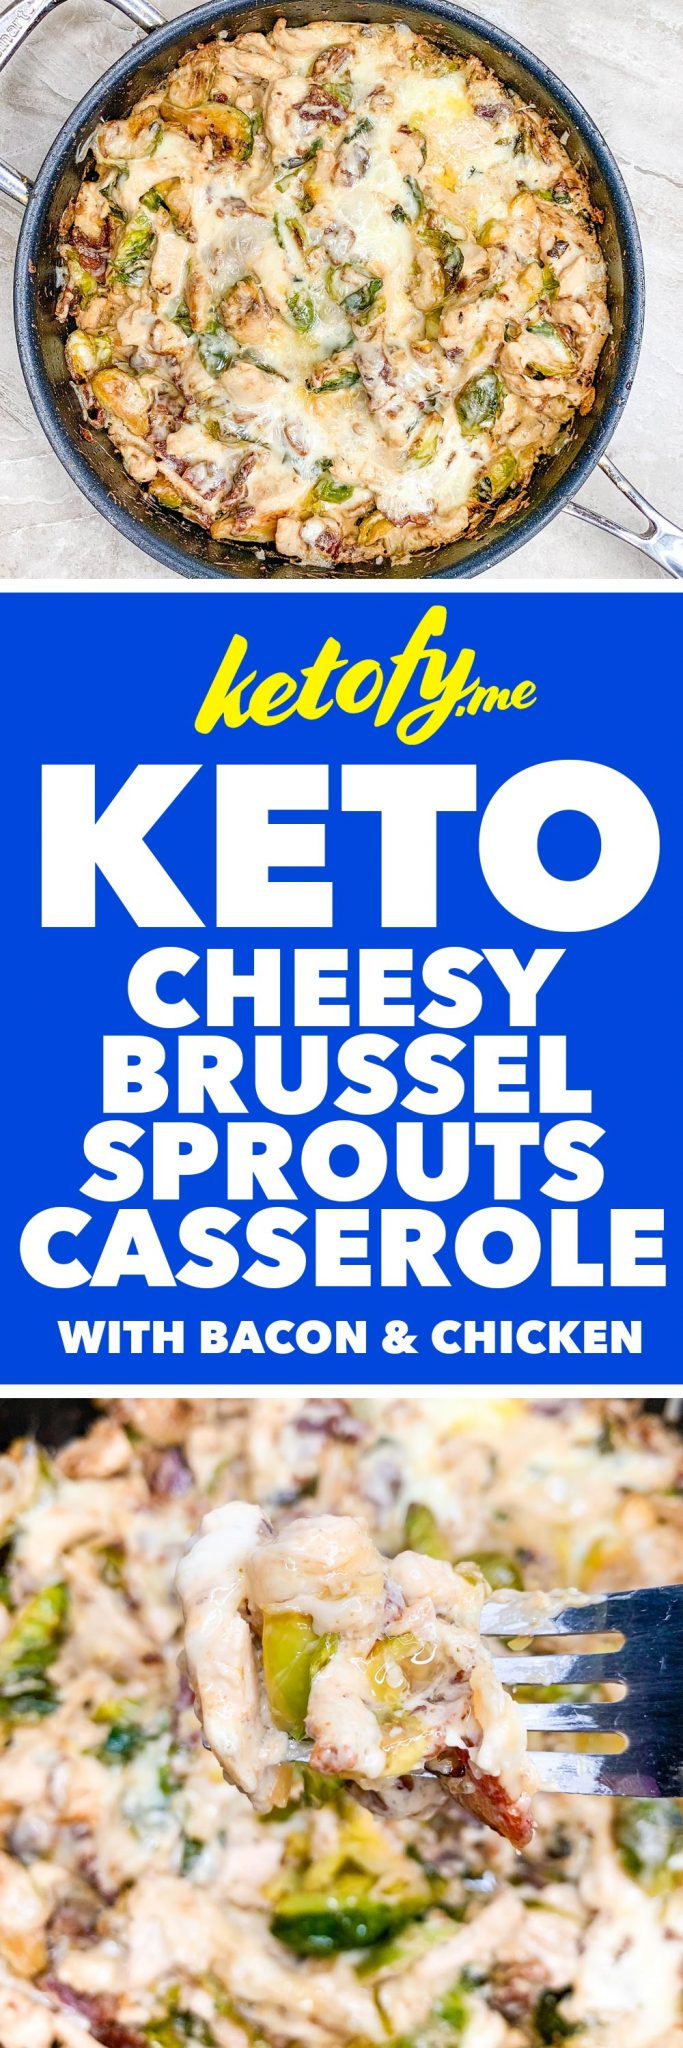 Keto Cheesy Brussel Sprouts with Bacon and Chicken | www.ketofy.me | Keto Recipes | Keto Resources | Eating out on Keto | How to Start Keto Guide